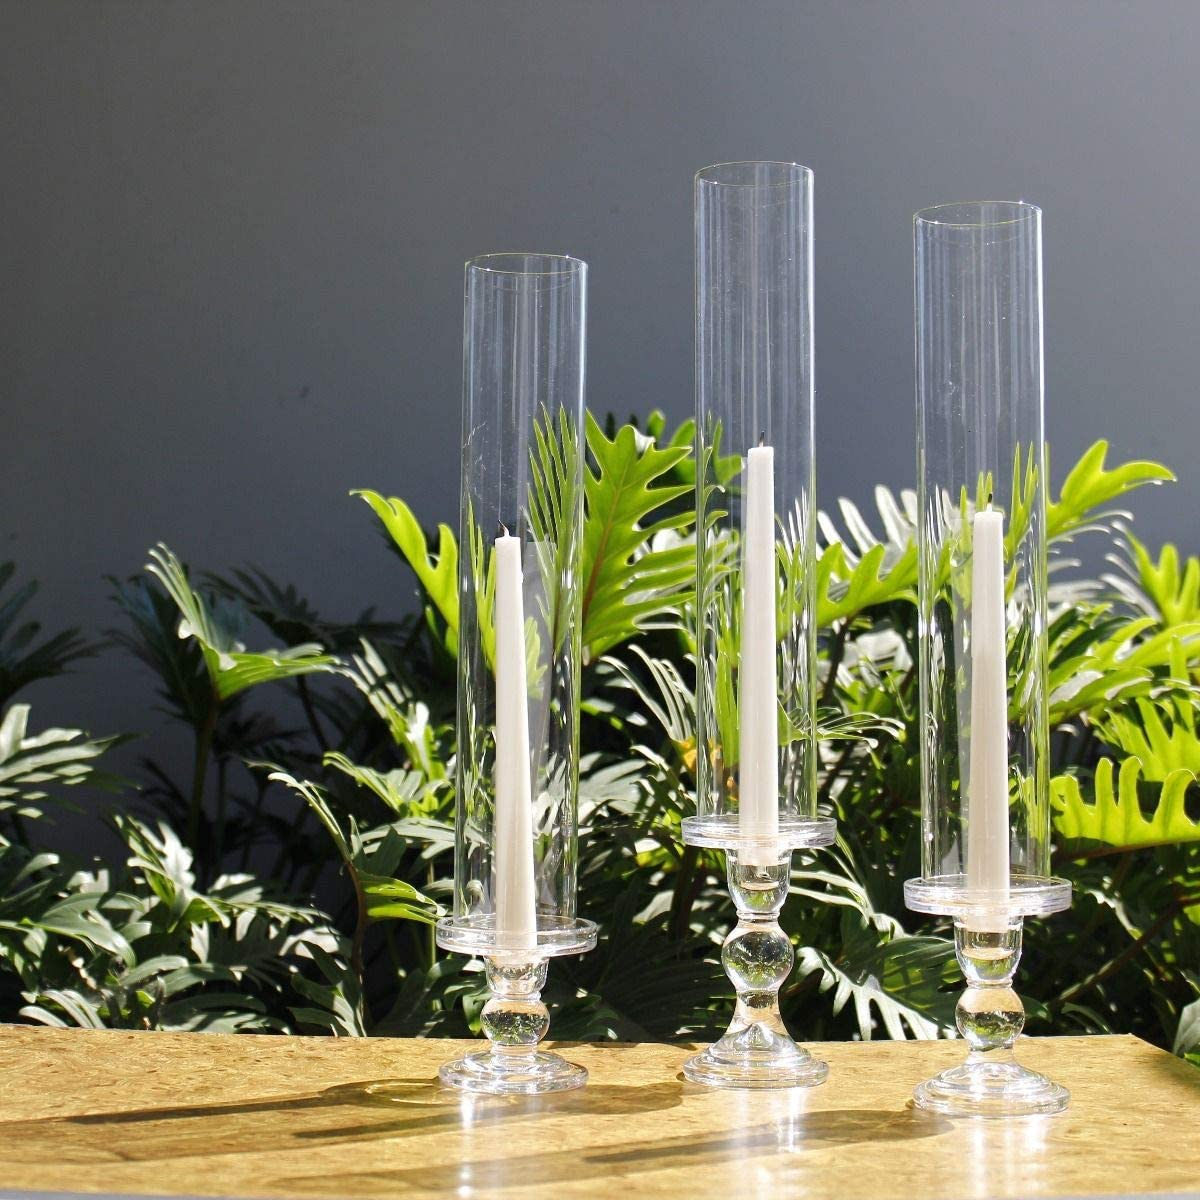 Tabletop Protection Decoration Open Ended Hurricane 3 Wide x 6 Tall Chimney Tube Candle Shade CYS EXCEL Pack of 6 Glass Hurricane Candle Holders Glass Cylinder Open Both Ends